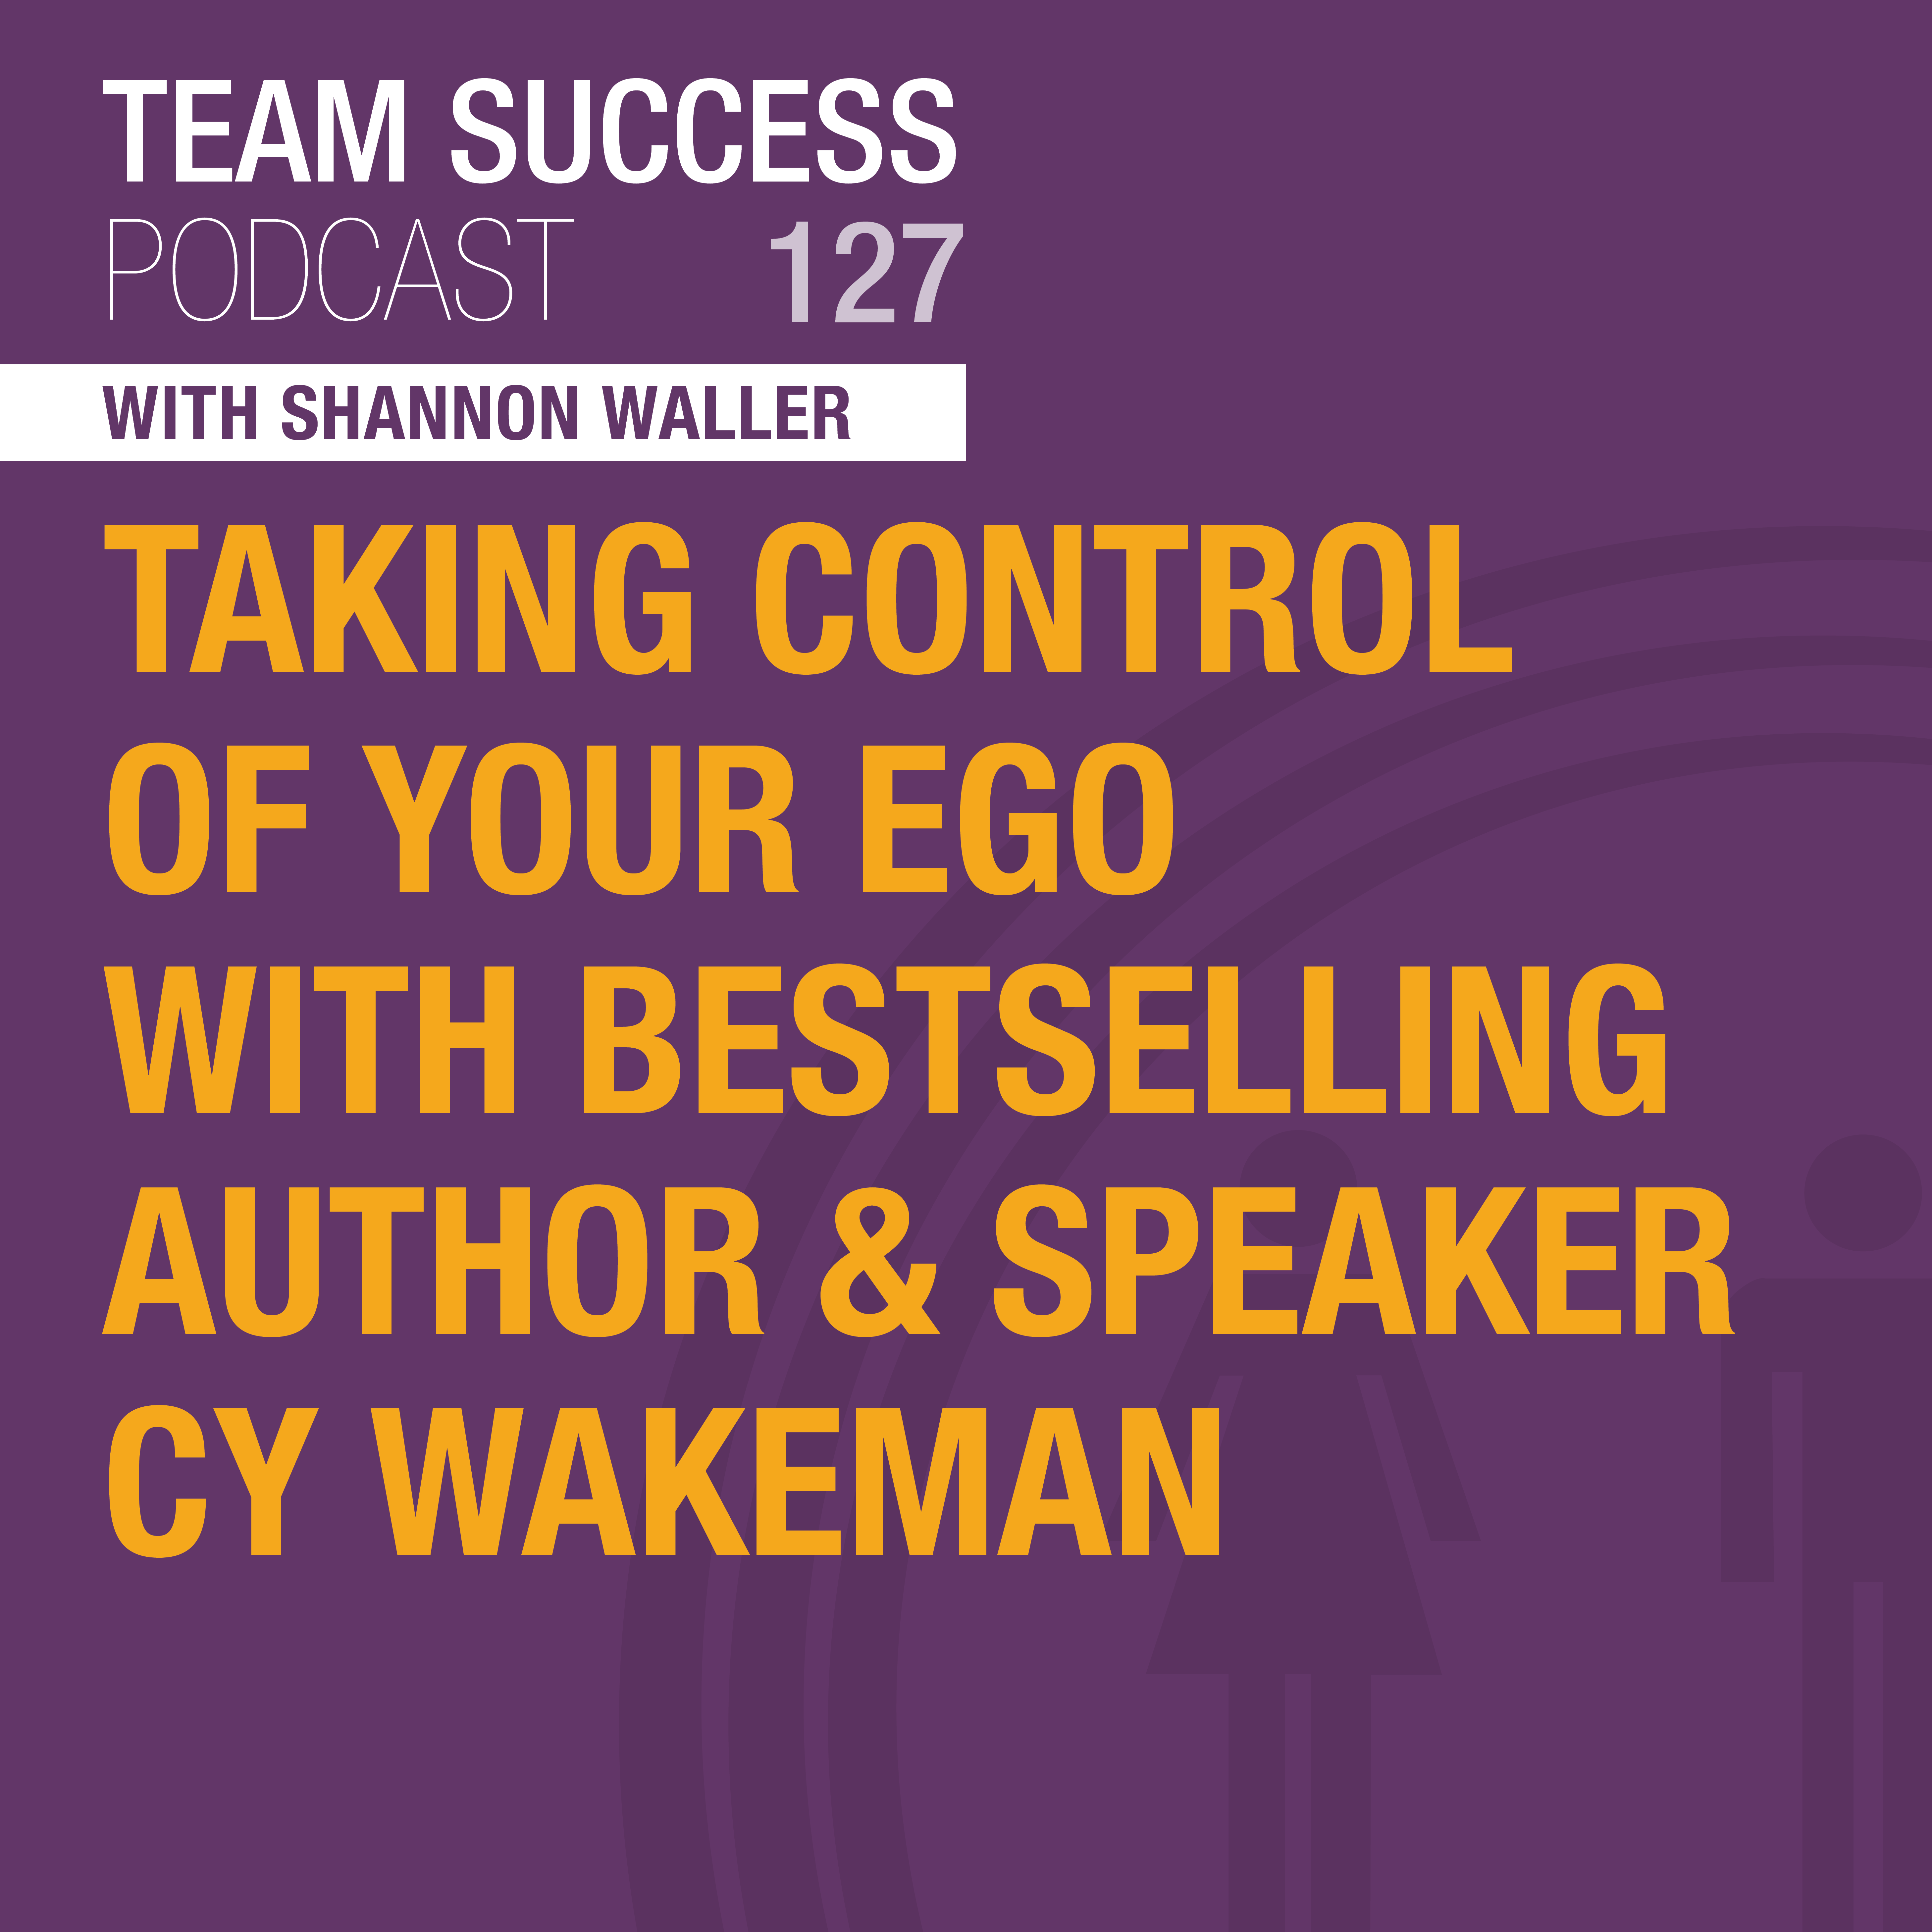 Taking Control Of Your Ego With Bestselling Author & Speaker, Cy Wakeman